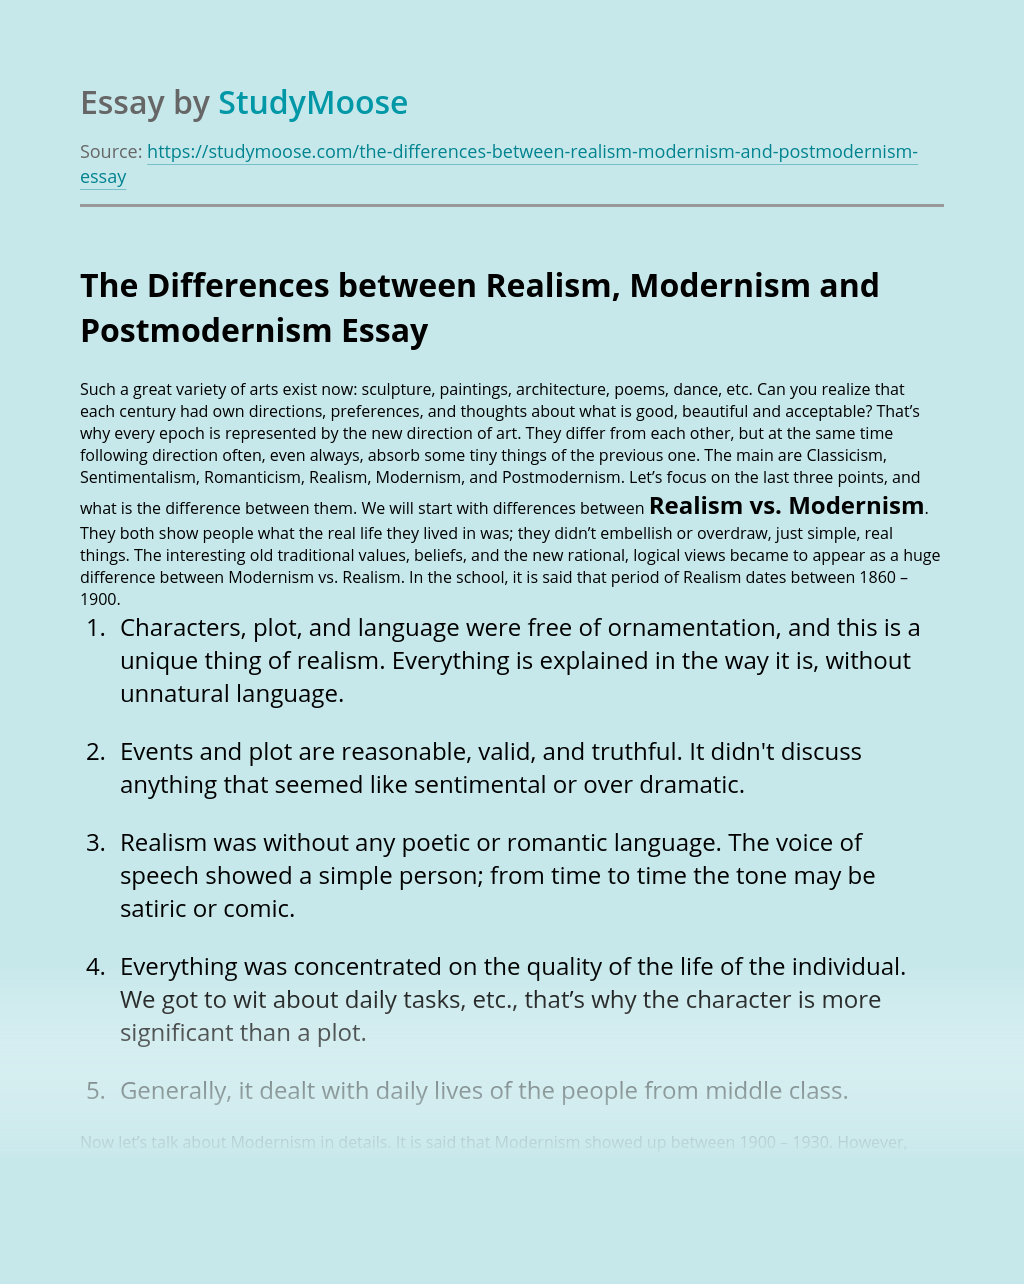 The Differences between Realism, Modernism and Postmodernism